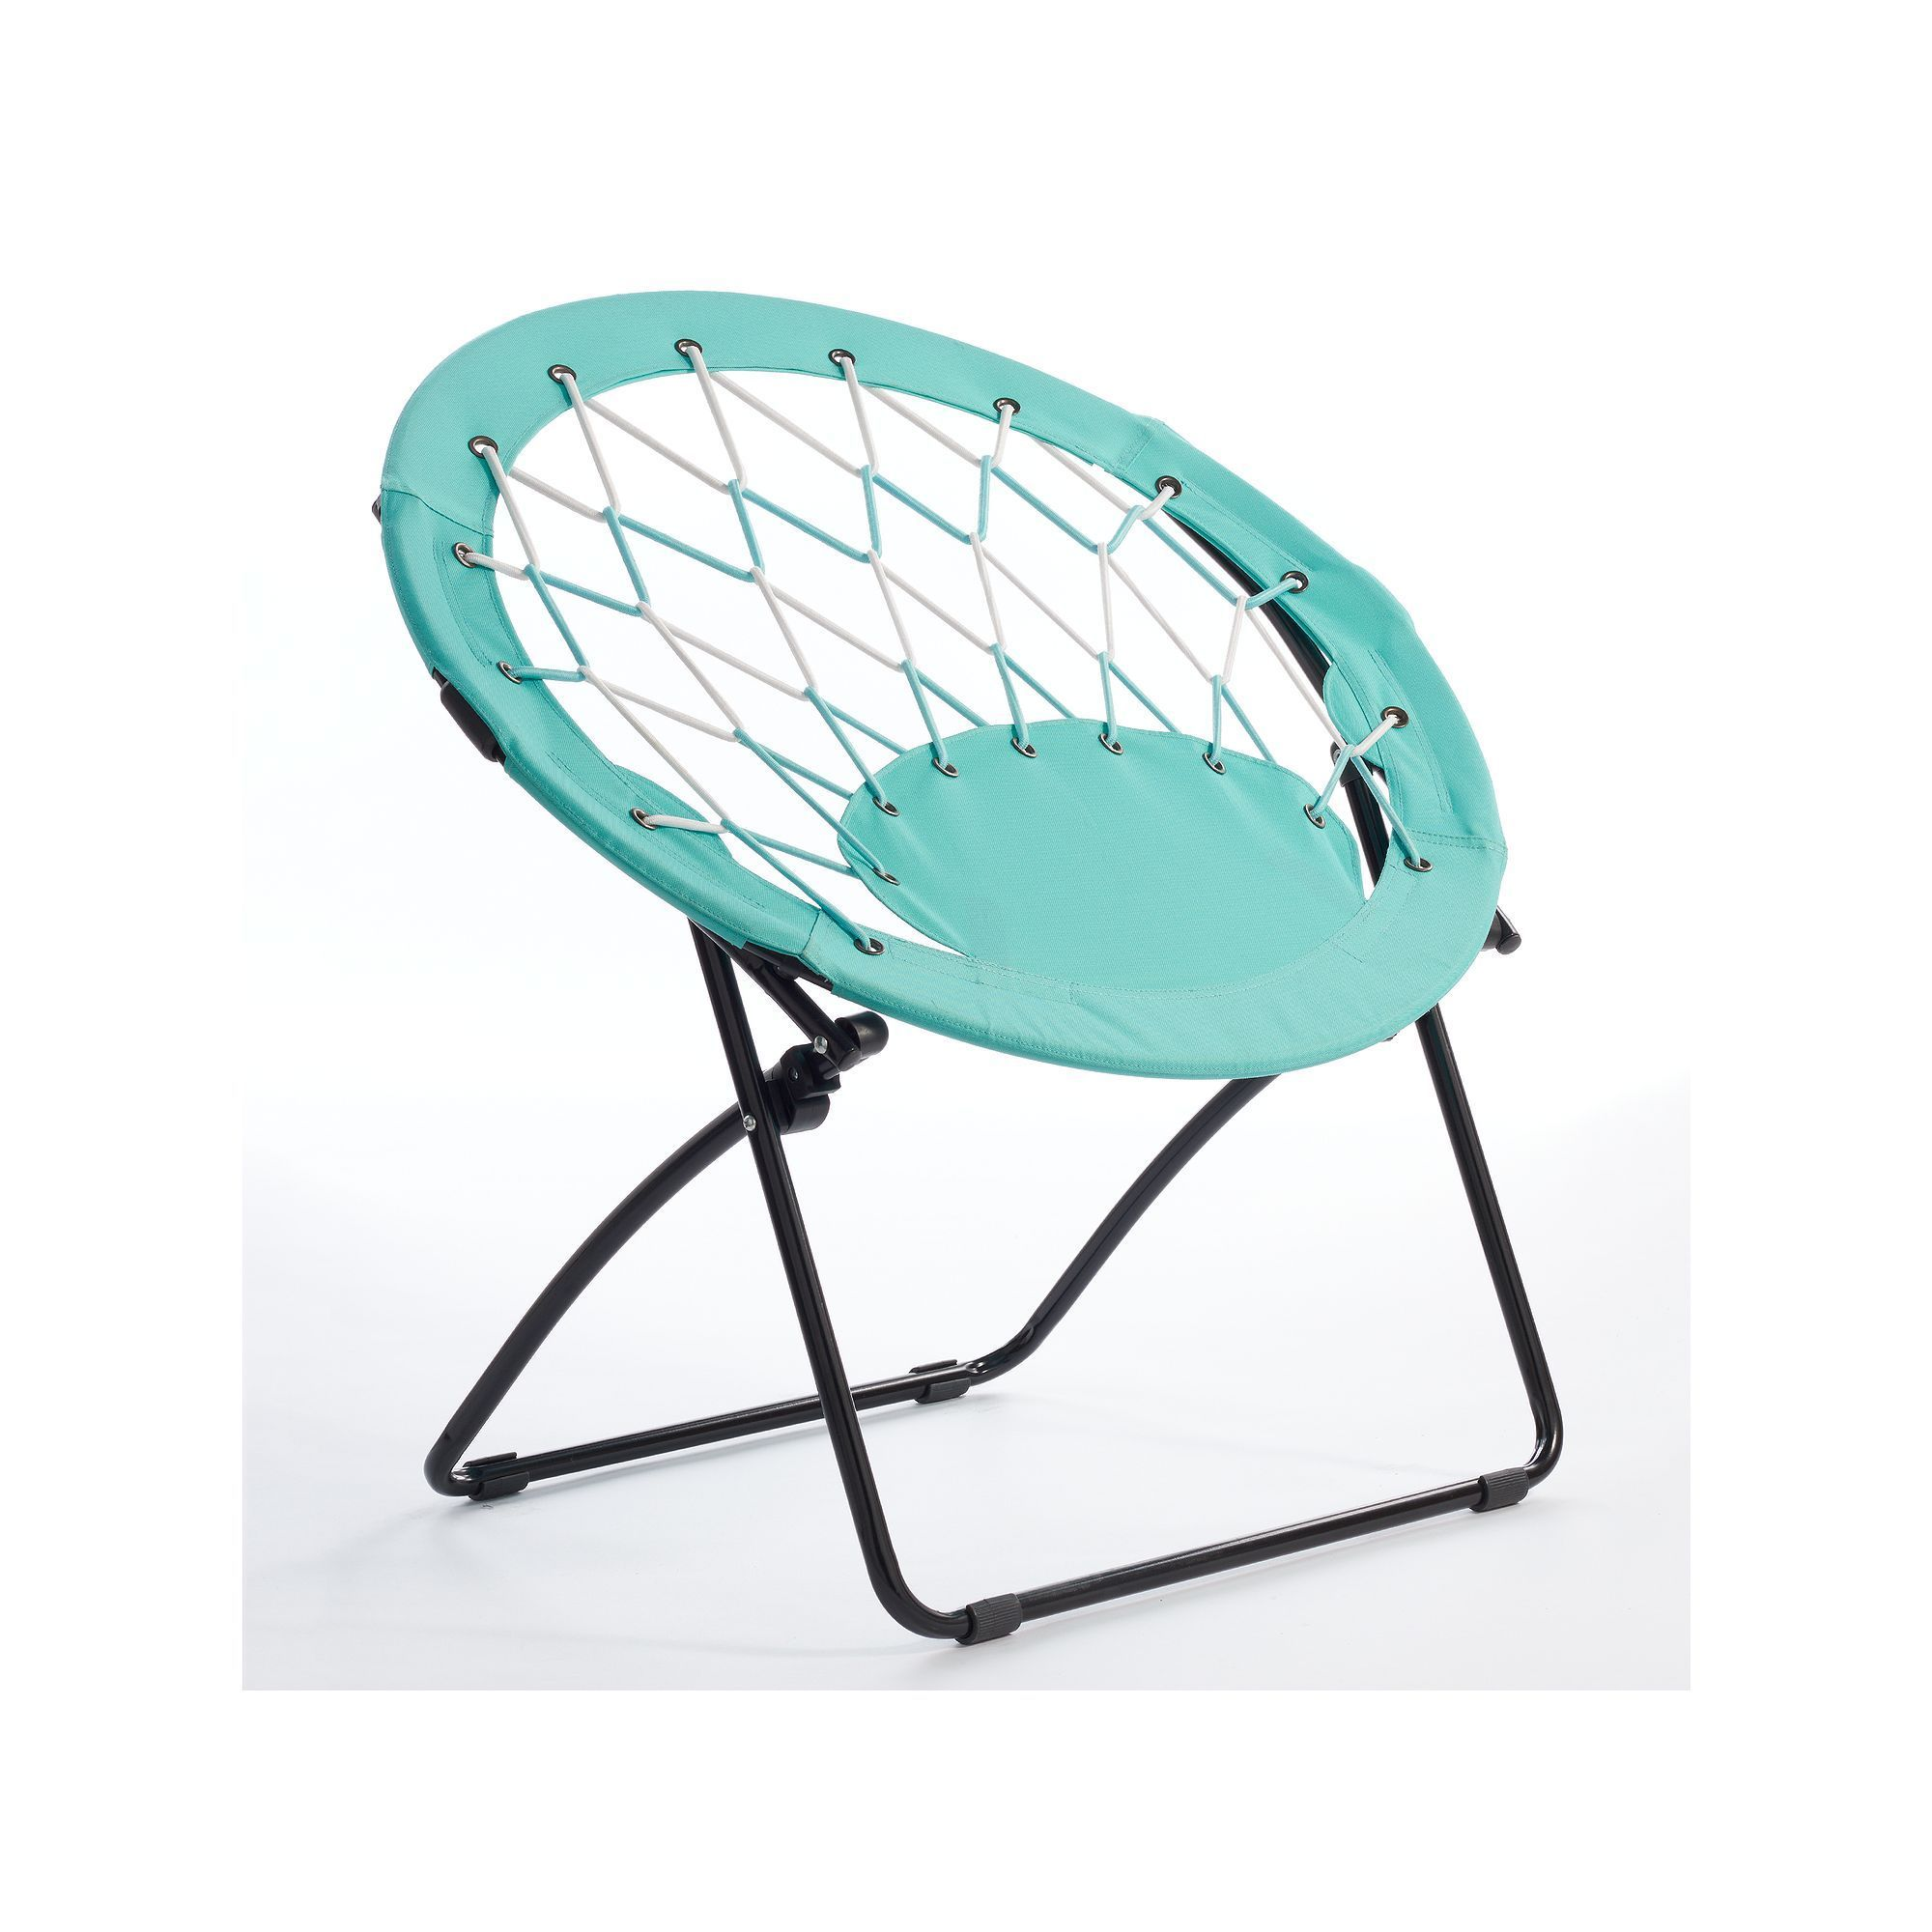 Enjoyable Simple By Design Circle Bungee Chair Products Bungee Download Free Architecture Designs Rallybritishbridgeorg